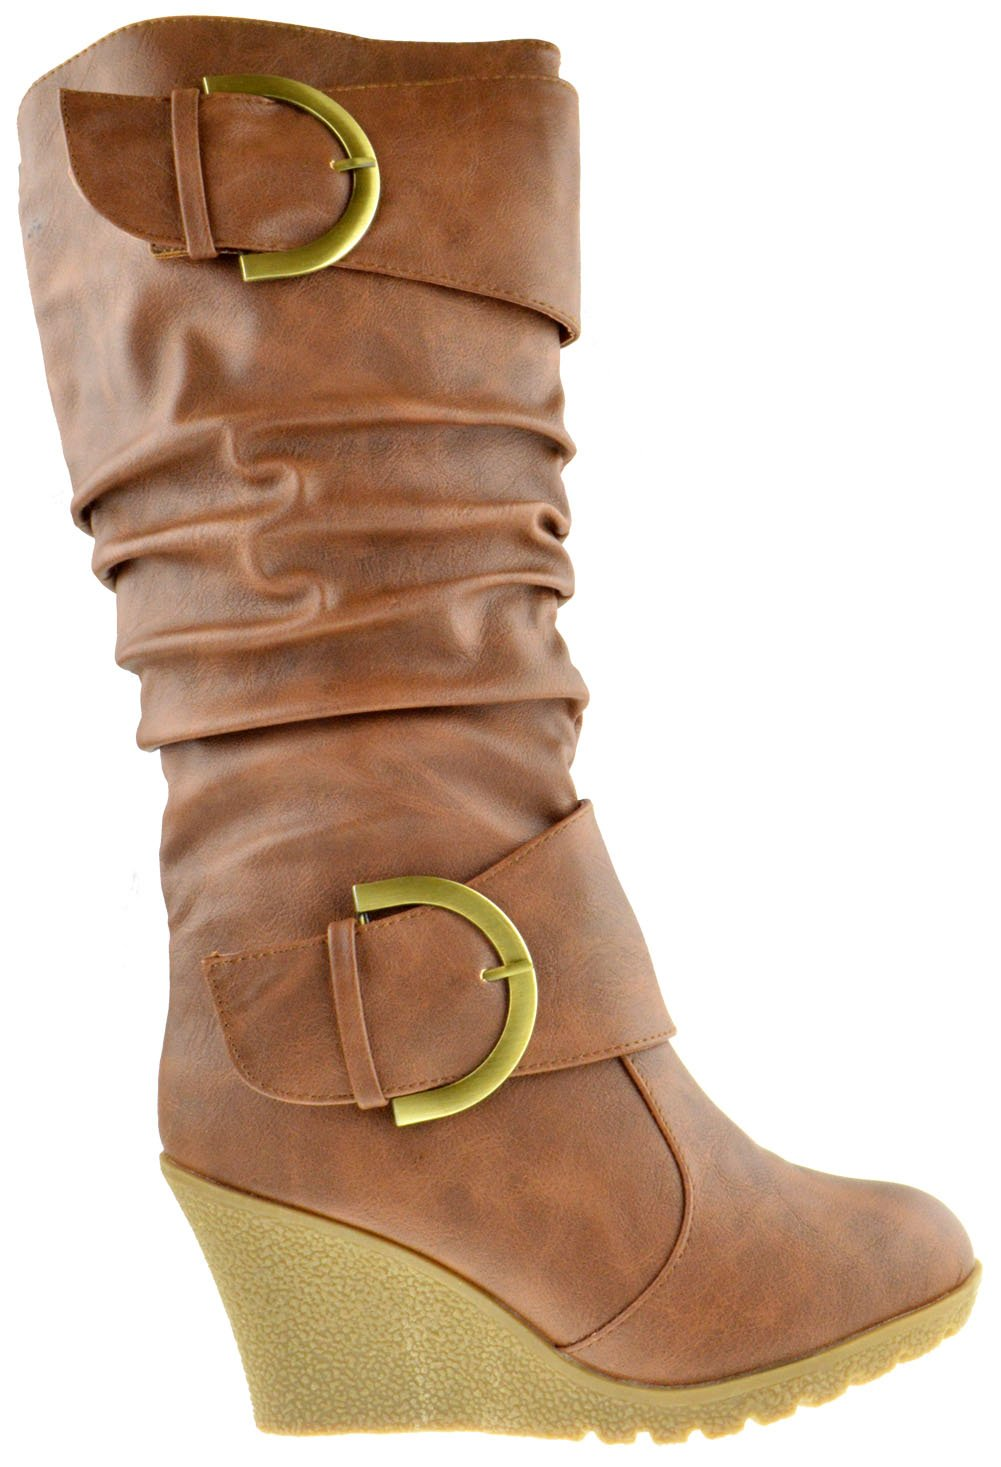 Top Moda Pure 65 Womens Slouch Wedge Boots Tan 9 by Top Moda (Image #2)